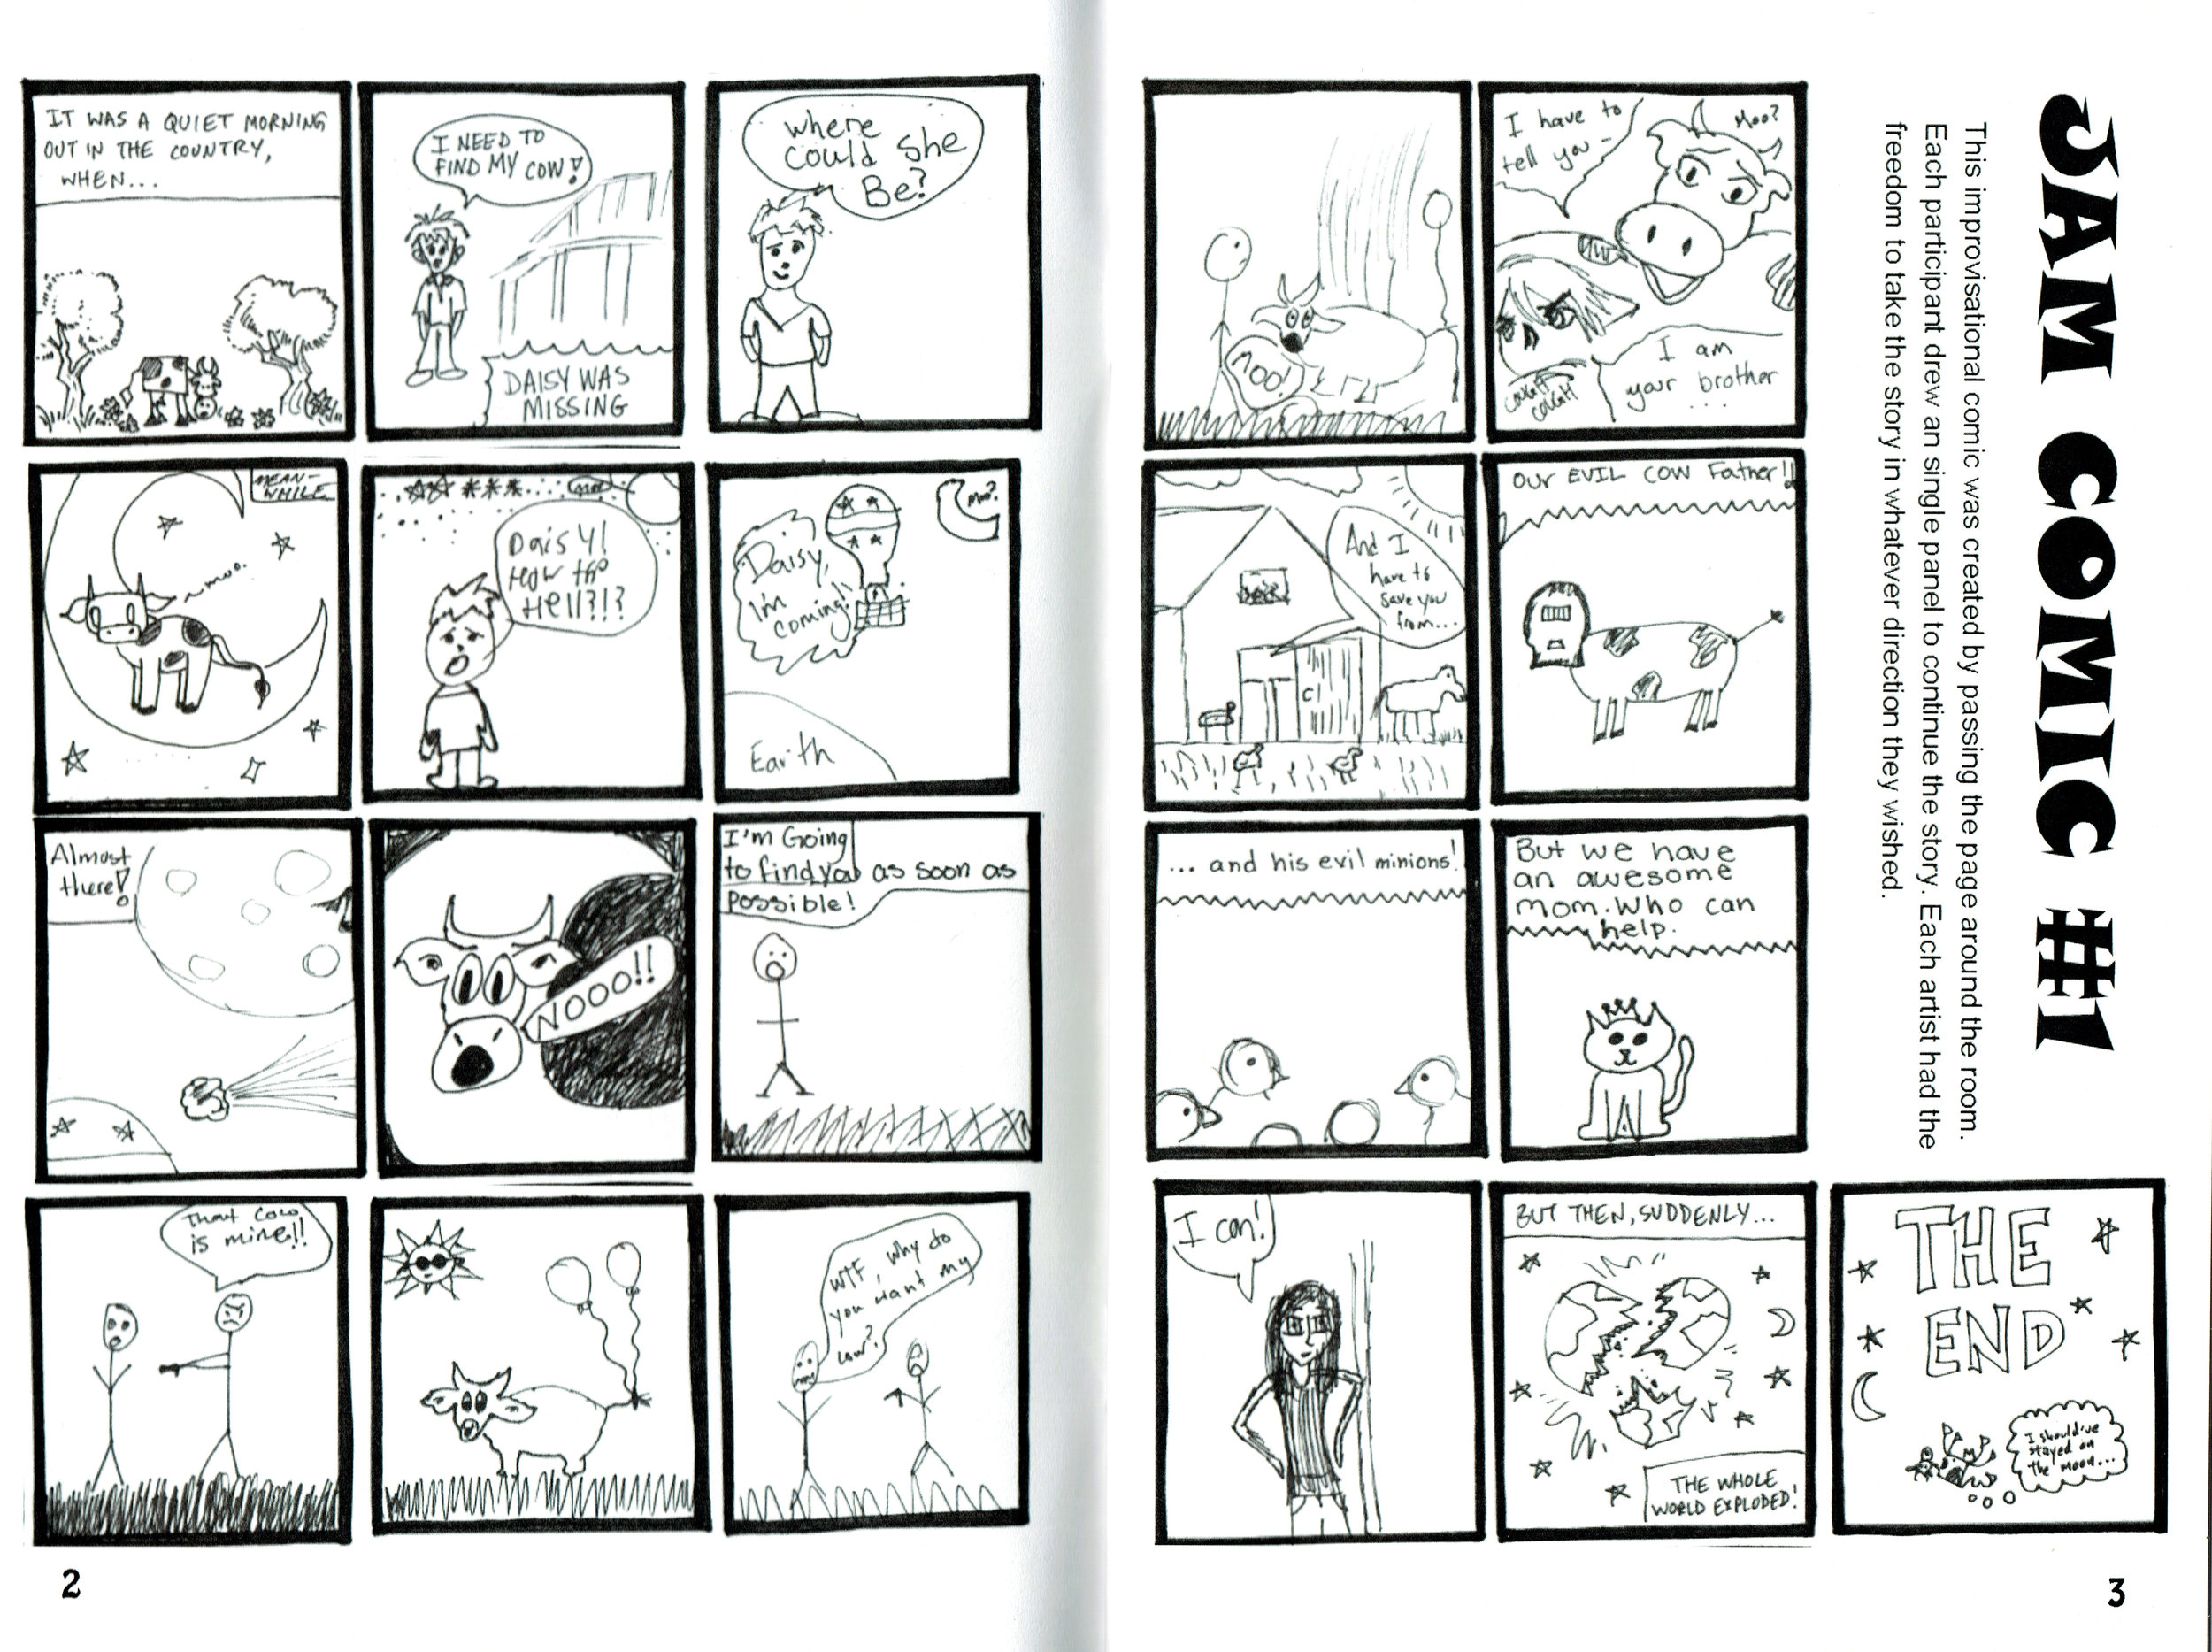 A jam Comic from the Mutant Rabbit 2016 Anthology